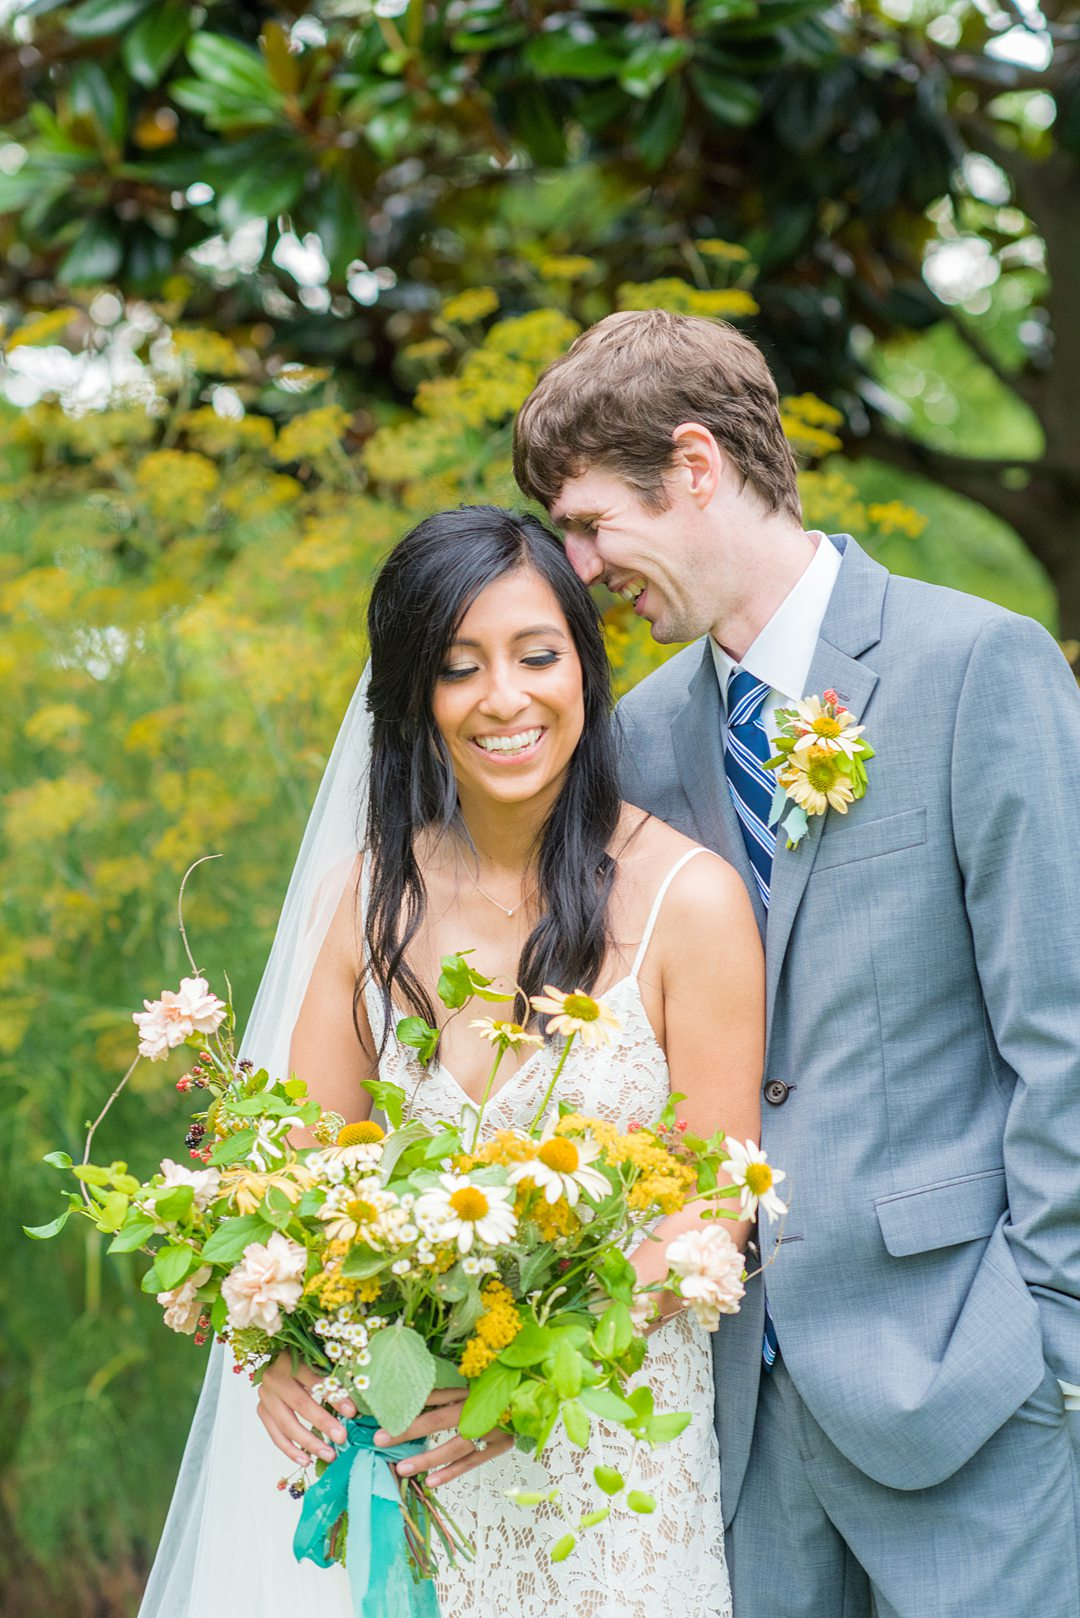 The bride and groom eloped and went to the alternative plan when Coronavirus foiled their original wedding. Wildflowers completed an outdoor ceremony in Raleigh, NC photographed by Mikkel Paige Photography. Hair and makeup by Wink, flowers by Mood Fleuriste. #mikkelpaige #raleighelopement #smalloutdoorceremony